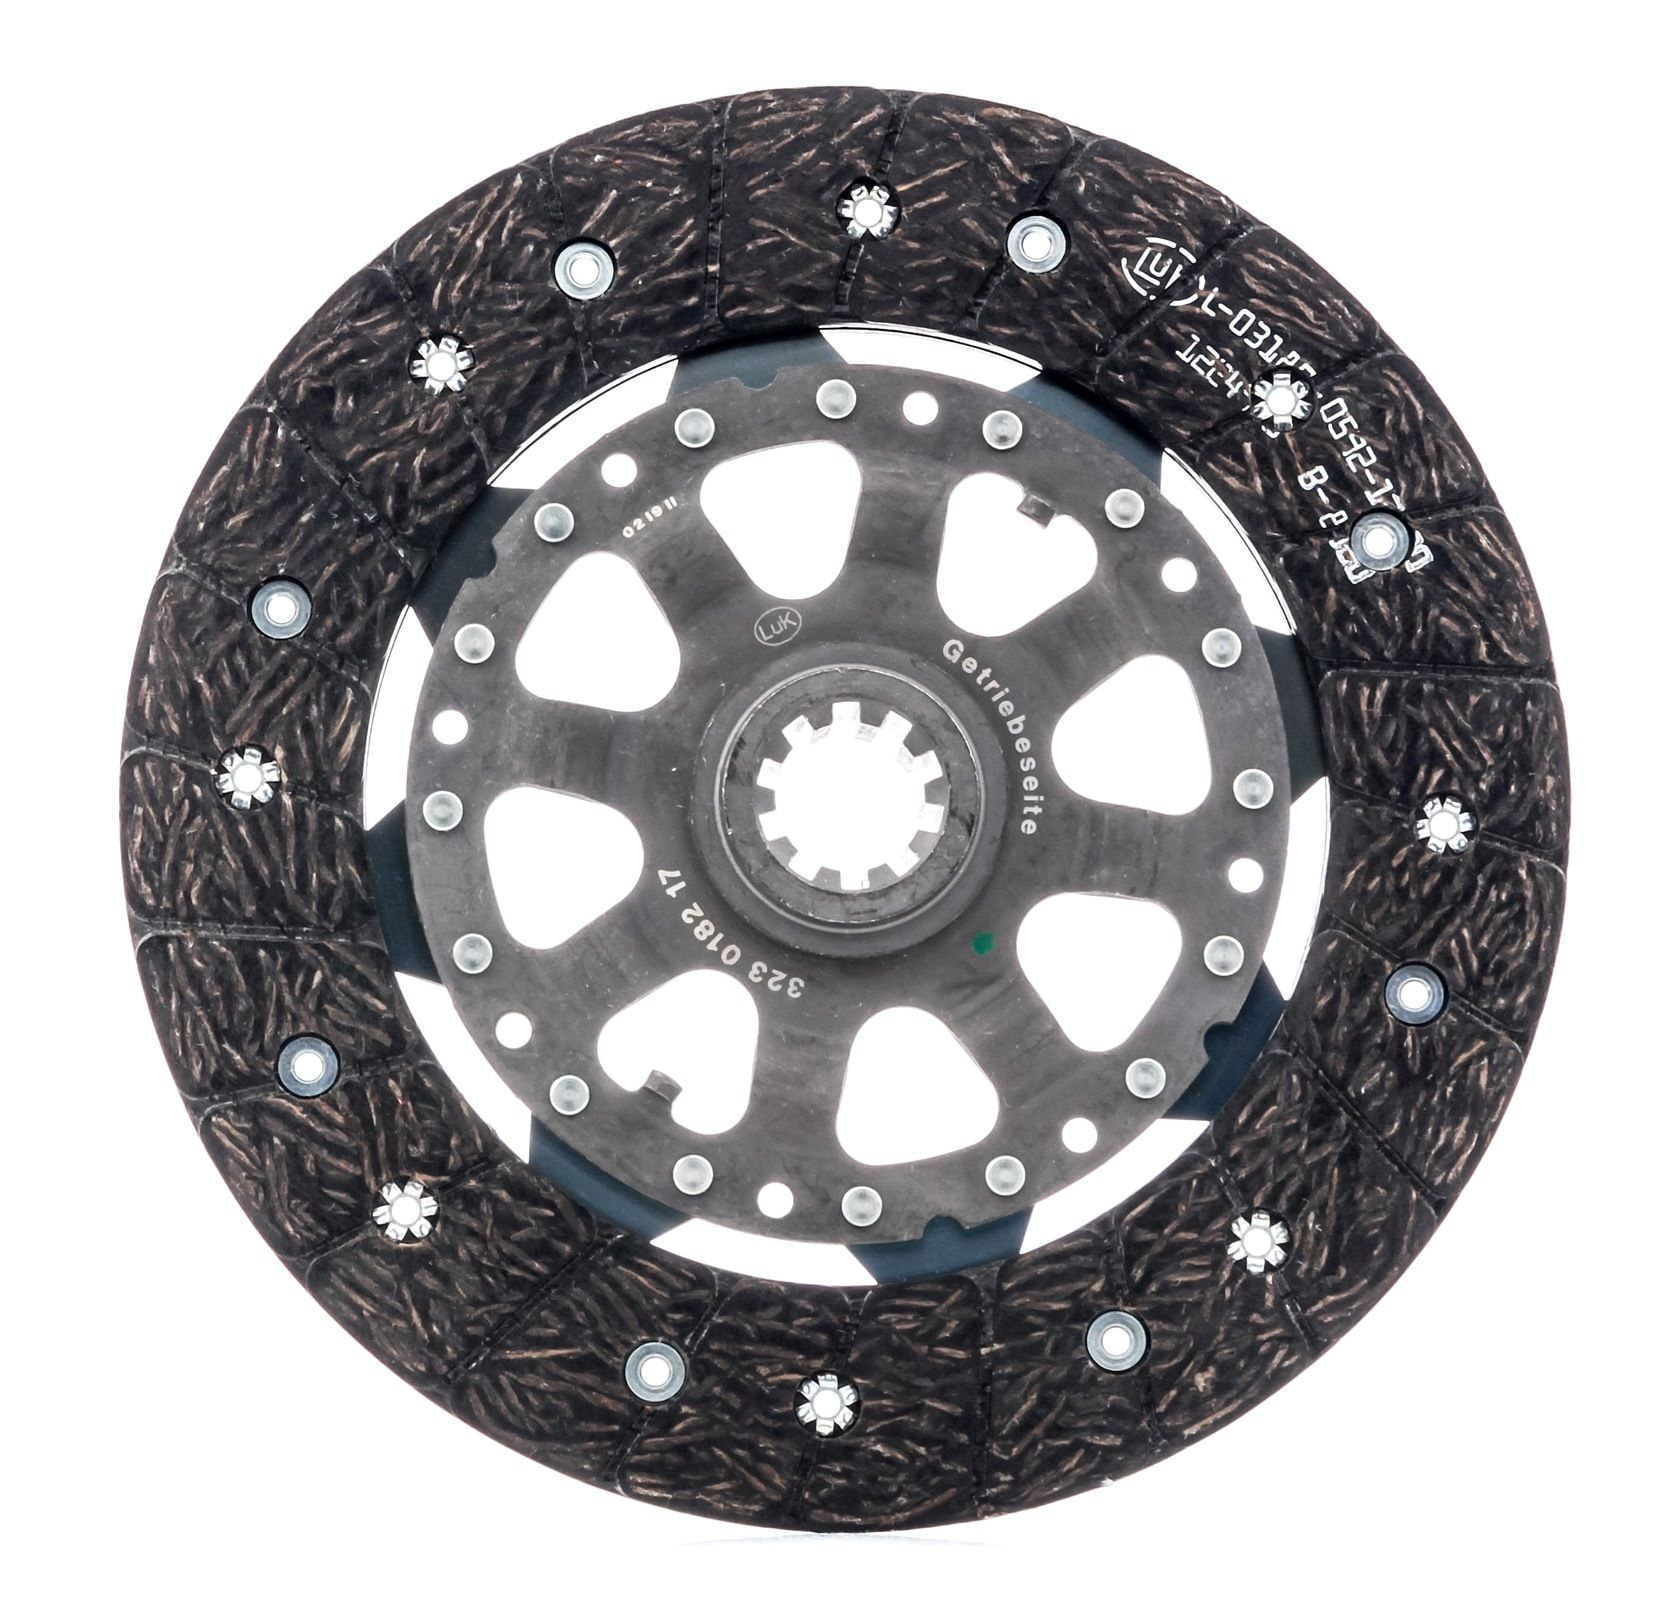 Clutch disc 323 0182 17 LuK — only new parts